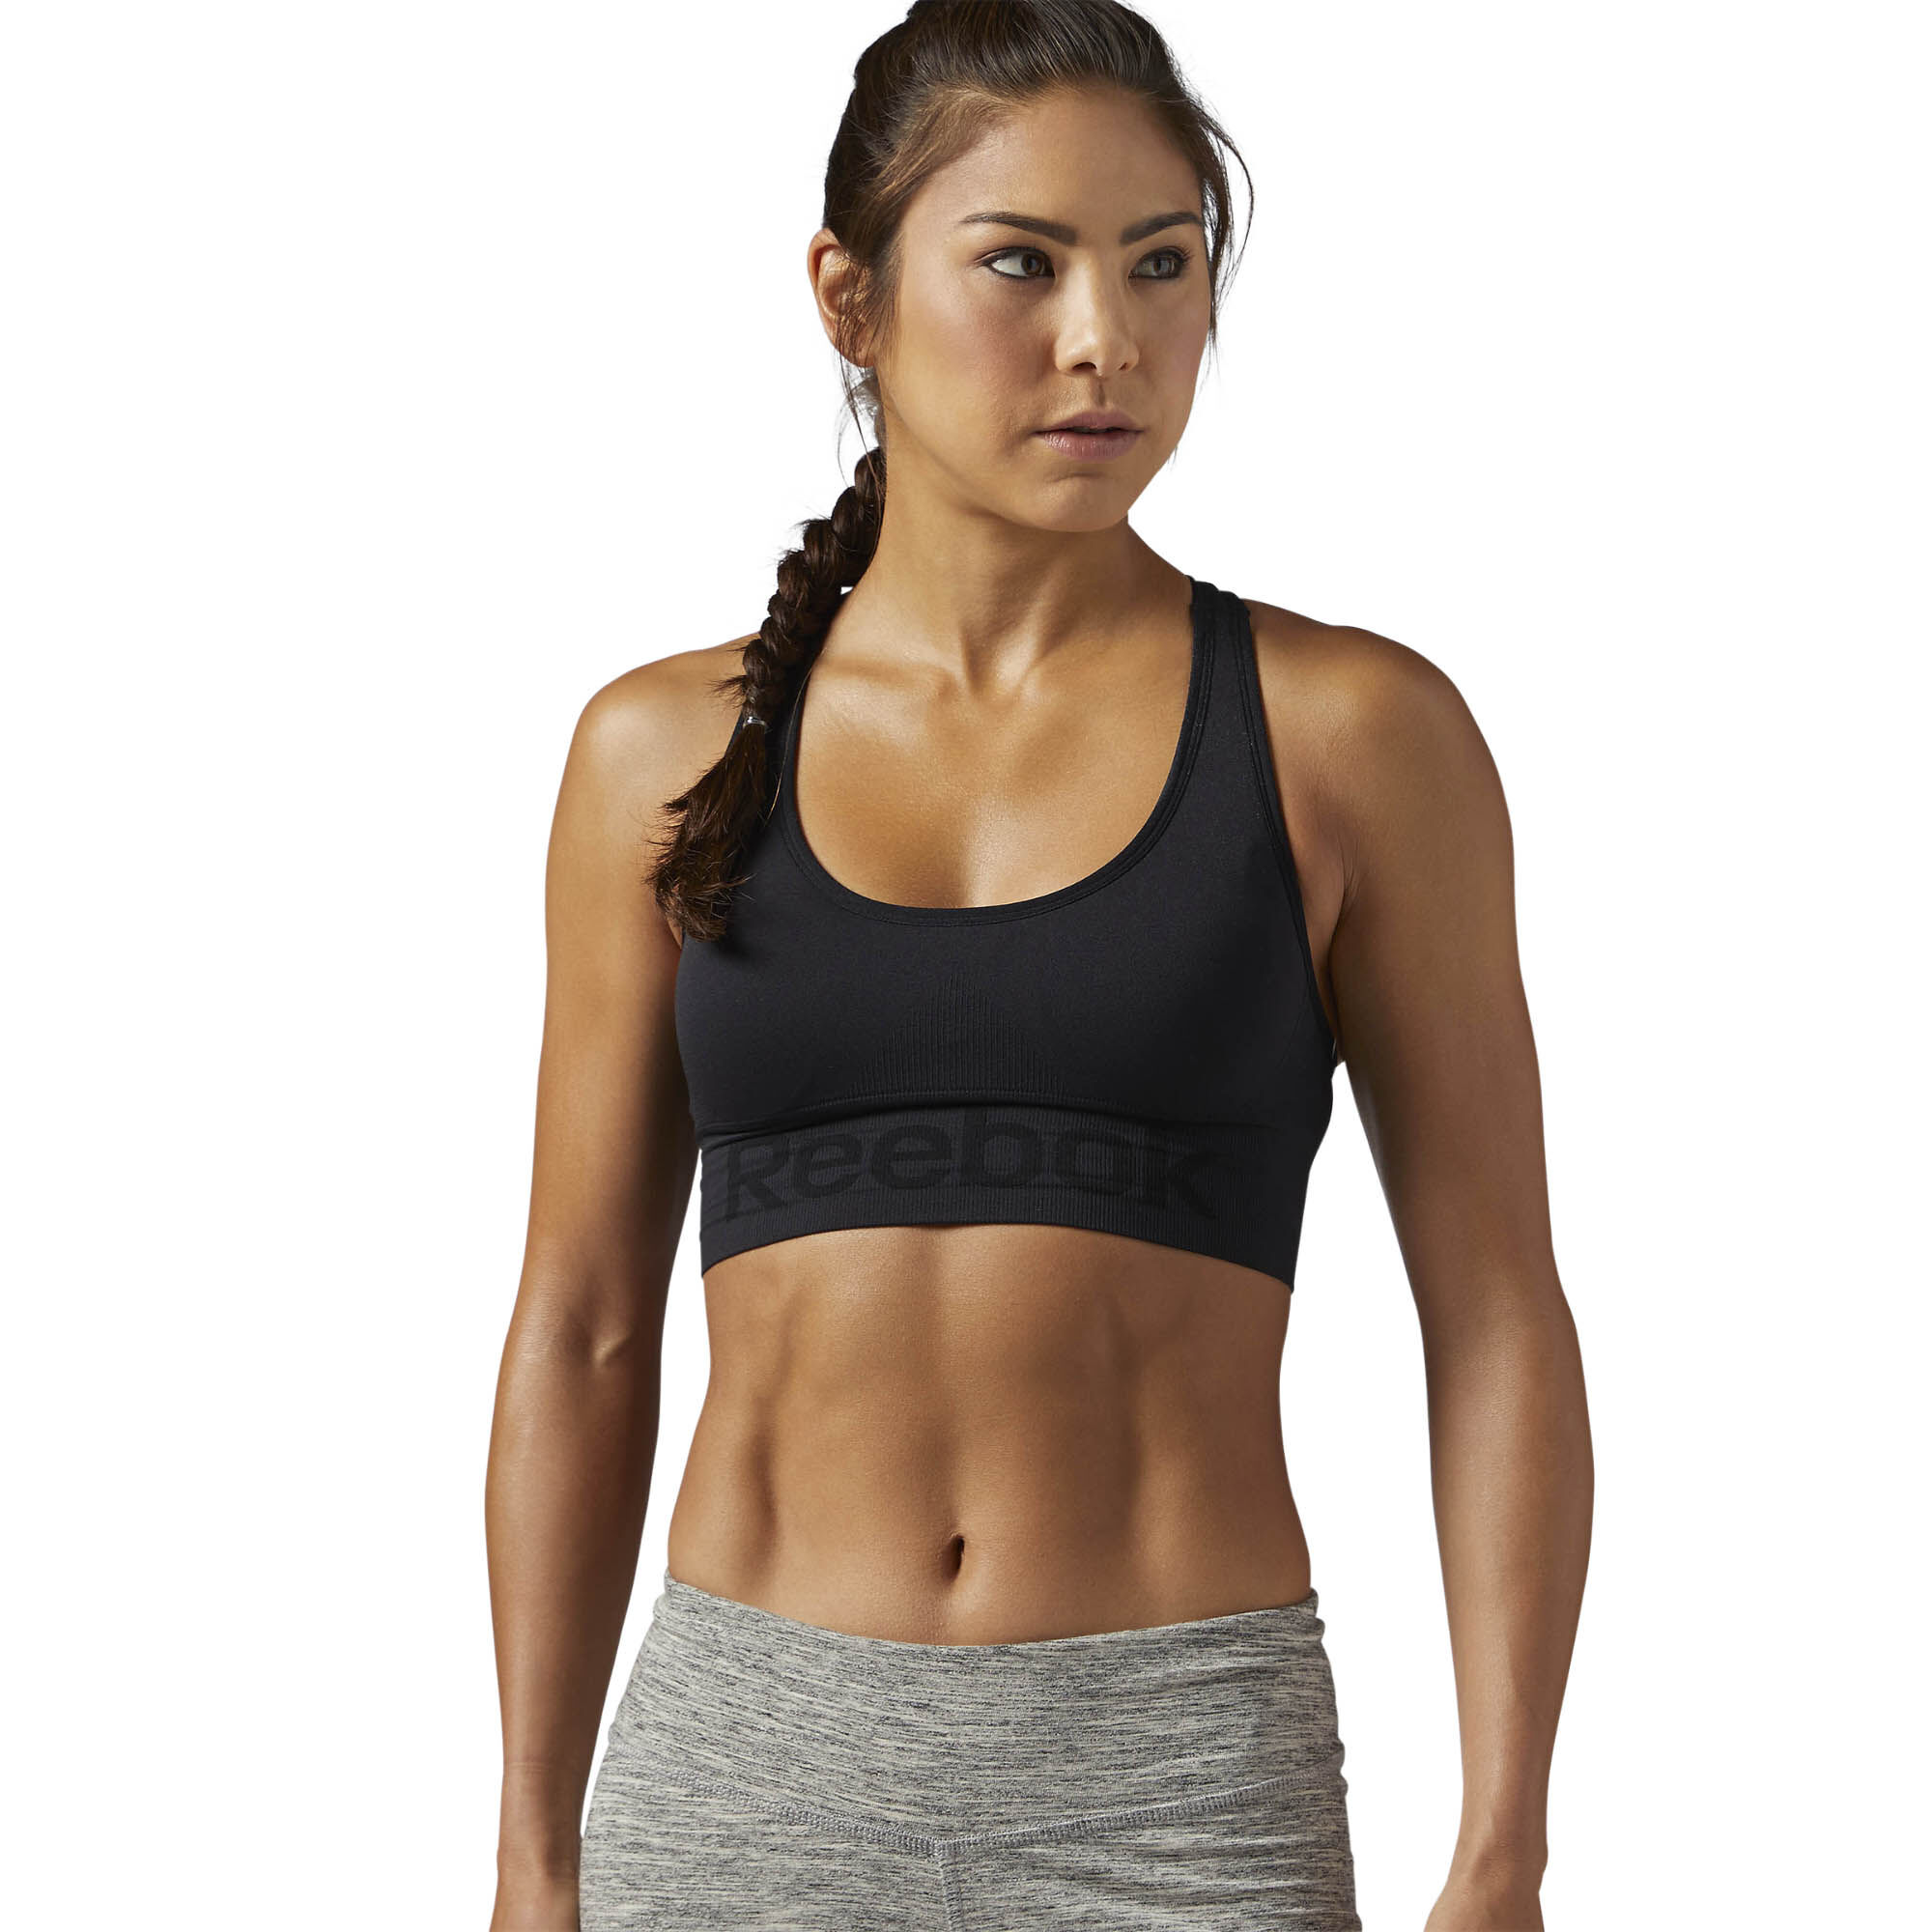 Reebok - Workout Ready Seamless Sports Bra Black CE7789